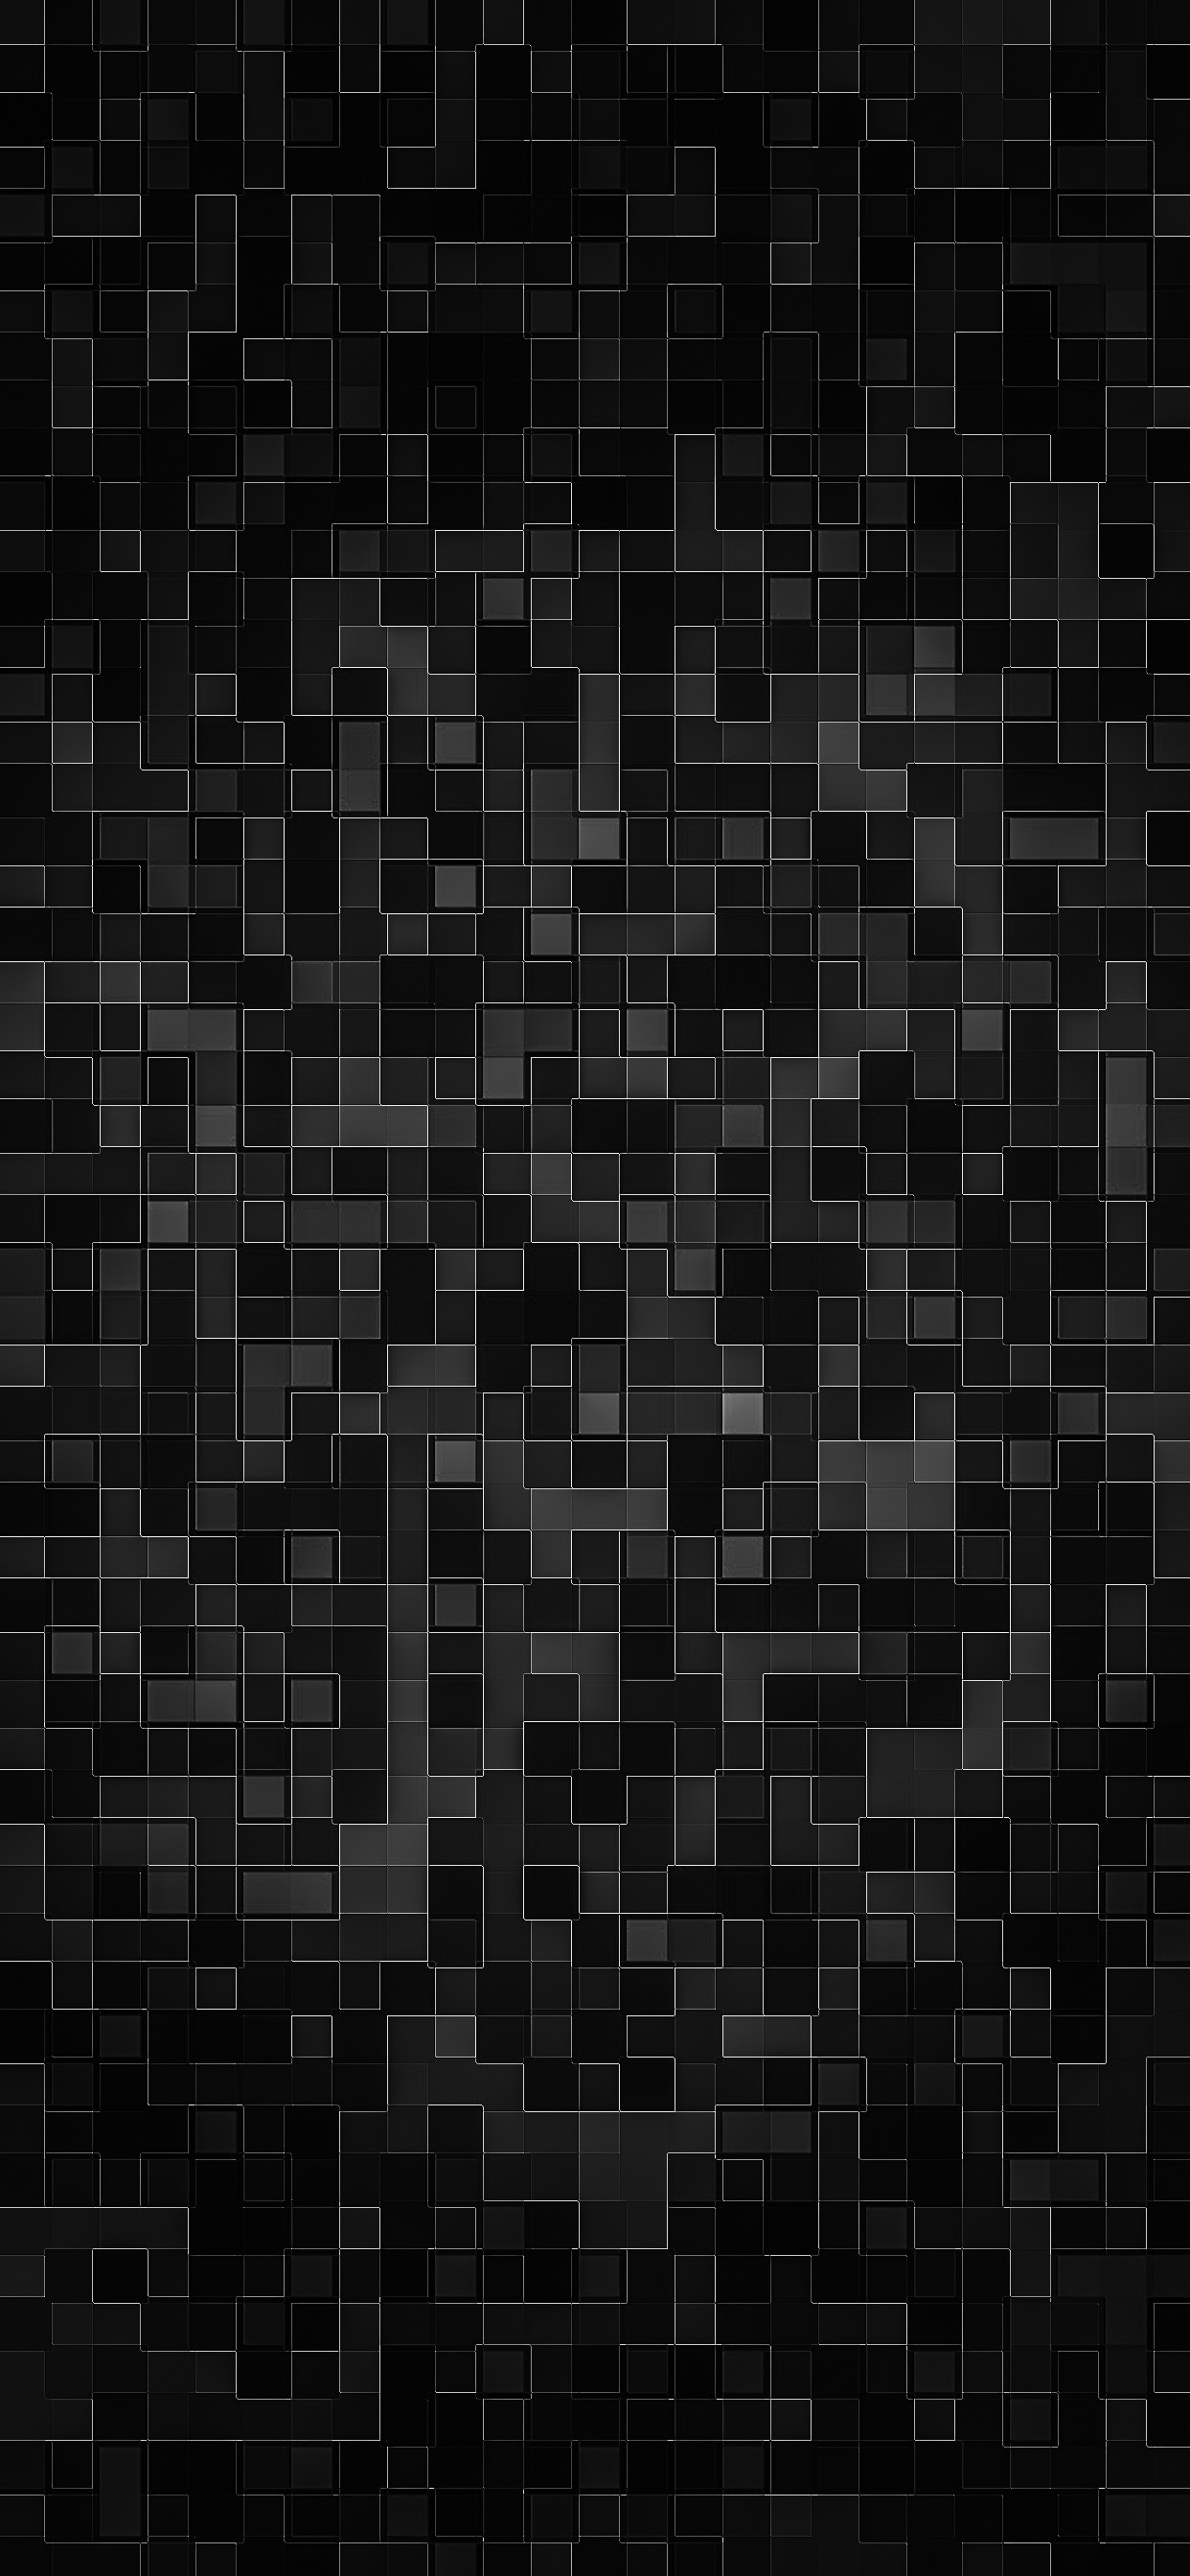 Dark Mosaic for iPhoneXSMAX-iPhoneXR ar72014